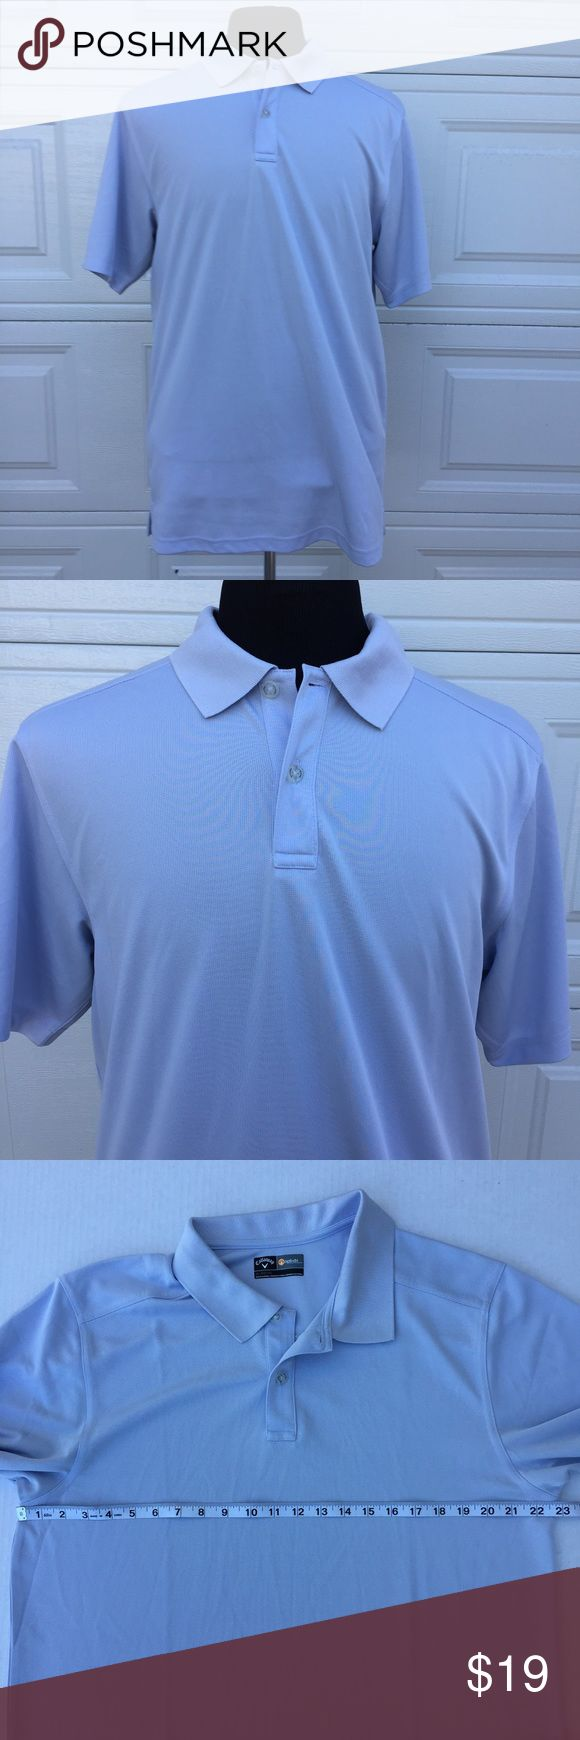 Men's Callaway Opt-Dri Short Sleeve Polo XL You're purchasing a Men's Callaway Opt-Dri Short Sleeve Powder Blue Polo in XL. One sleeve embroidered with Henry Brown Buick GMC/other sleeve has embroidered Callaway logo. Pre-Owned in good condition. Callaway Shirts Polos